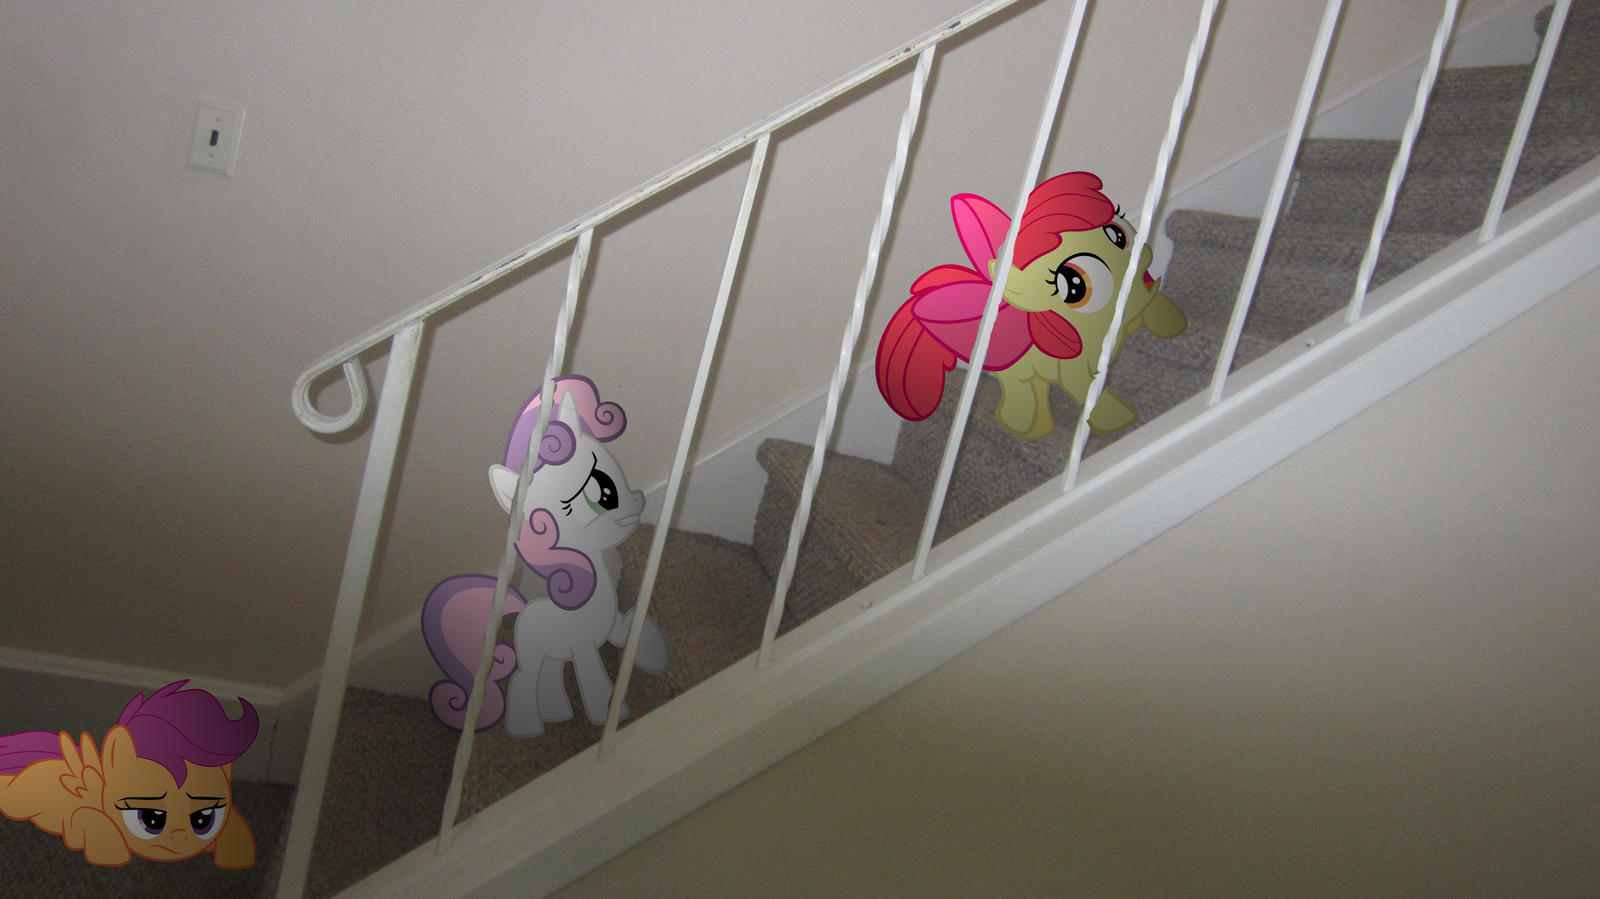 Trying to get up the stairs by MetalGriffen69. Trying to get up the stairs by MetalGriffen69 on DeviantArt